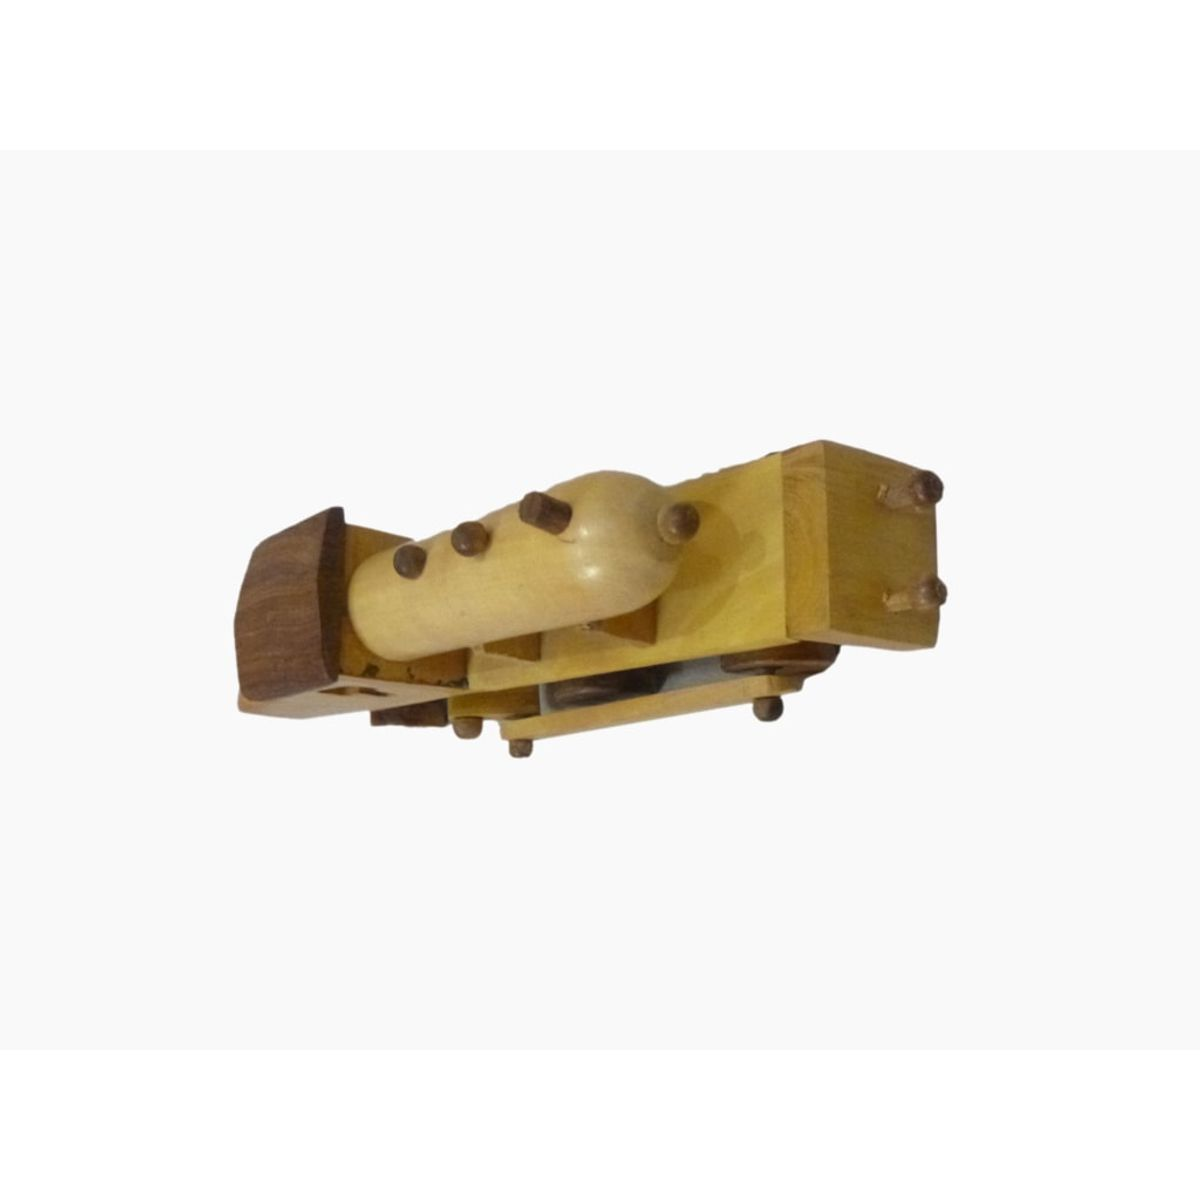 Craftofy Cream Colored Wooden Steam Type Train Engine With Wheels